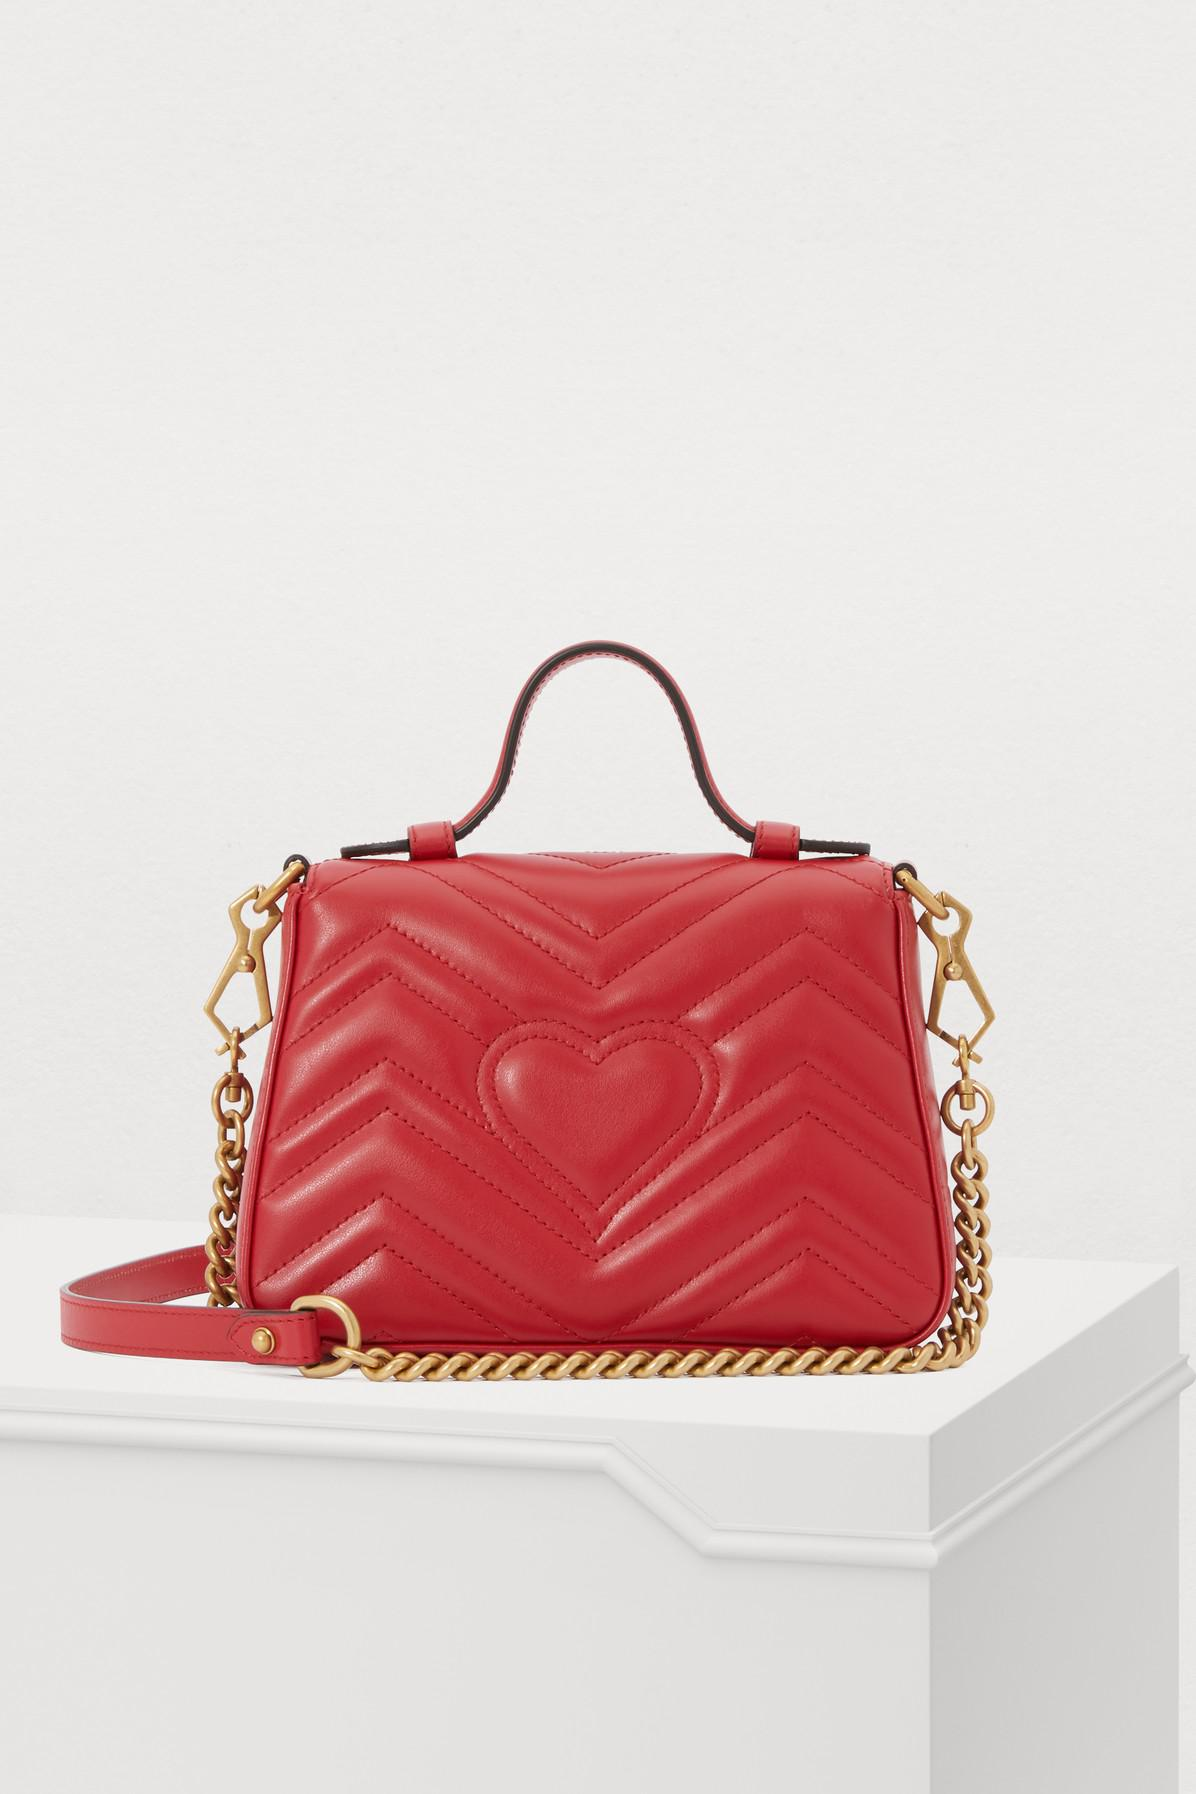 Gucci - Red GG Marmont Small Handbag - Lyst. View fullscreen 8fe91a557